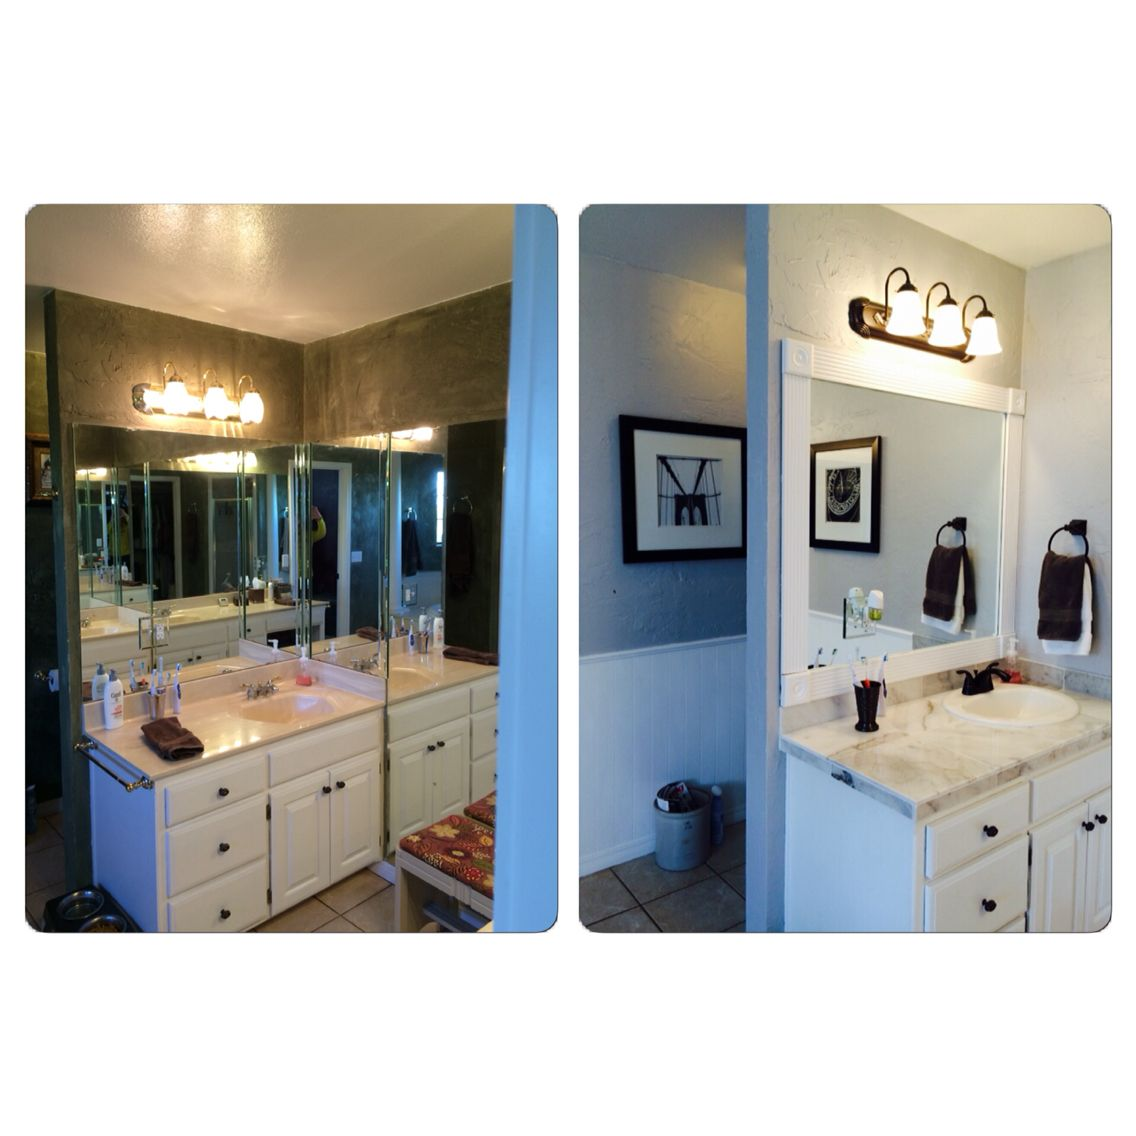 90\'s bathroom makeover- $4 clearance marble tile replaces hideous ...